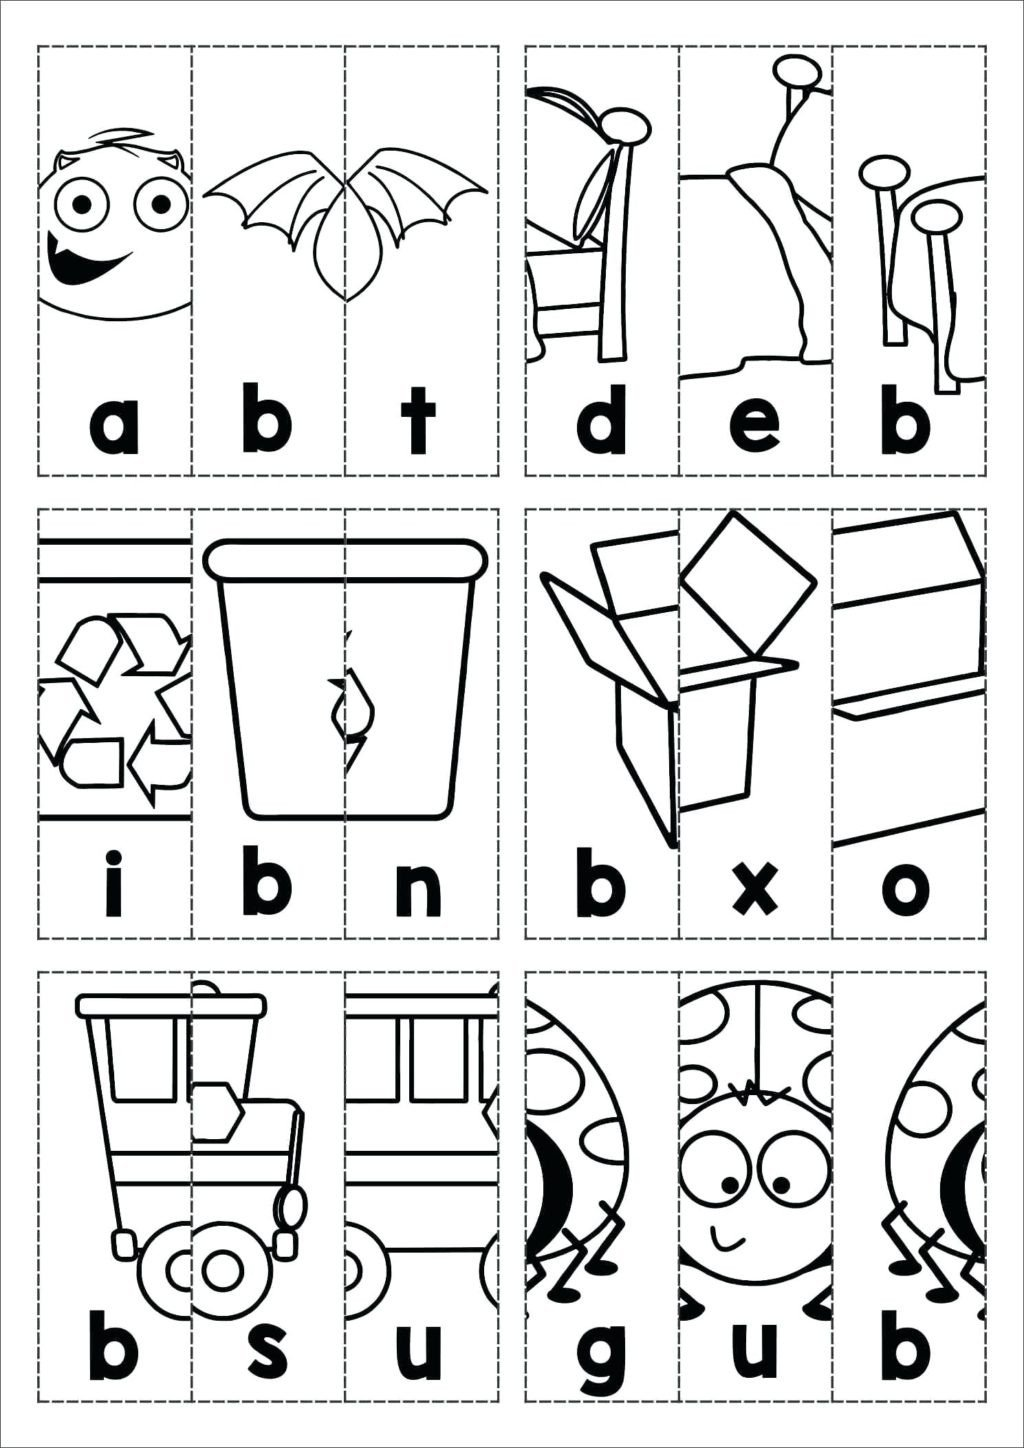 Cvc Words Worksheet Kindergarten Worksheet Outstanding Kindergarten Printable Worksheetsto